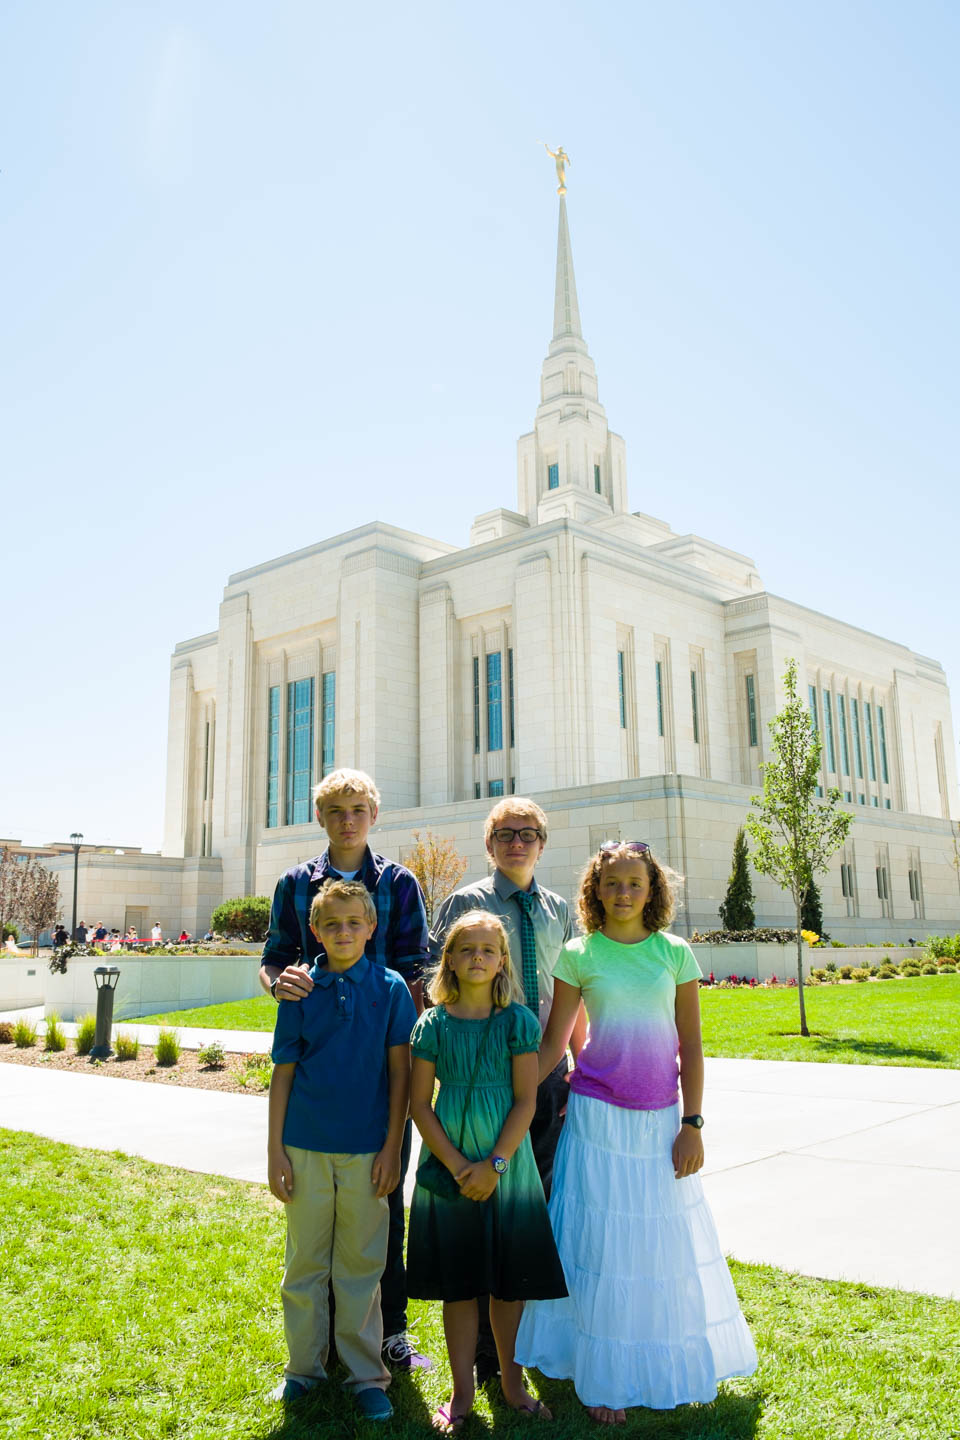 Friends of the family in front of the Ogden Temple